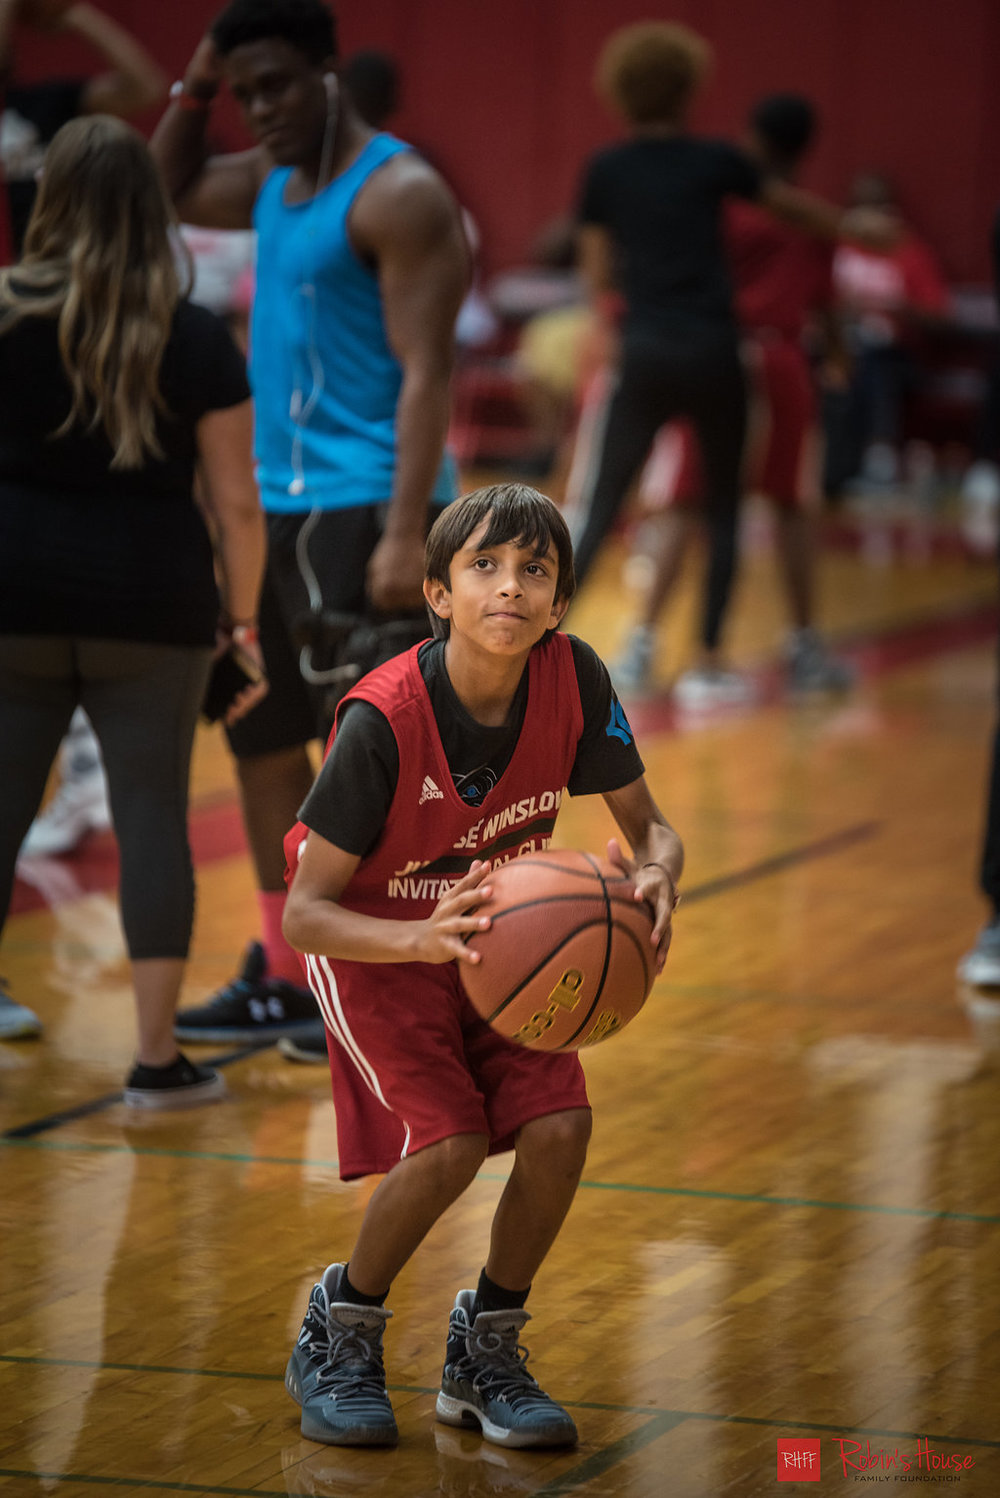 rhff_basketball_clinic_sunday-31.jpg